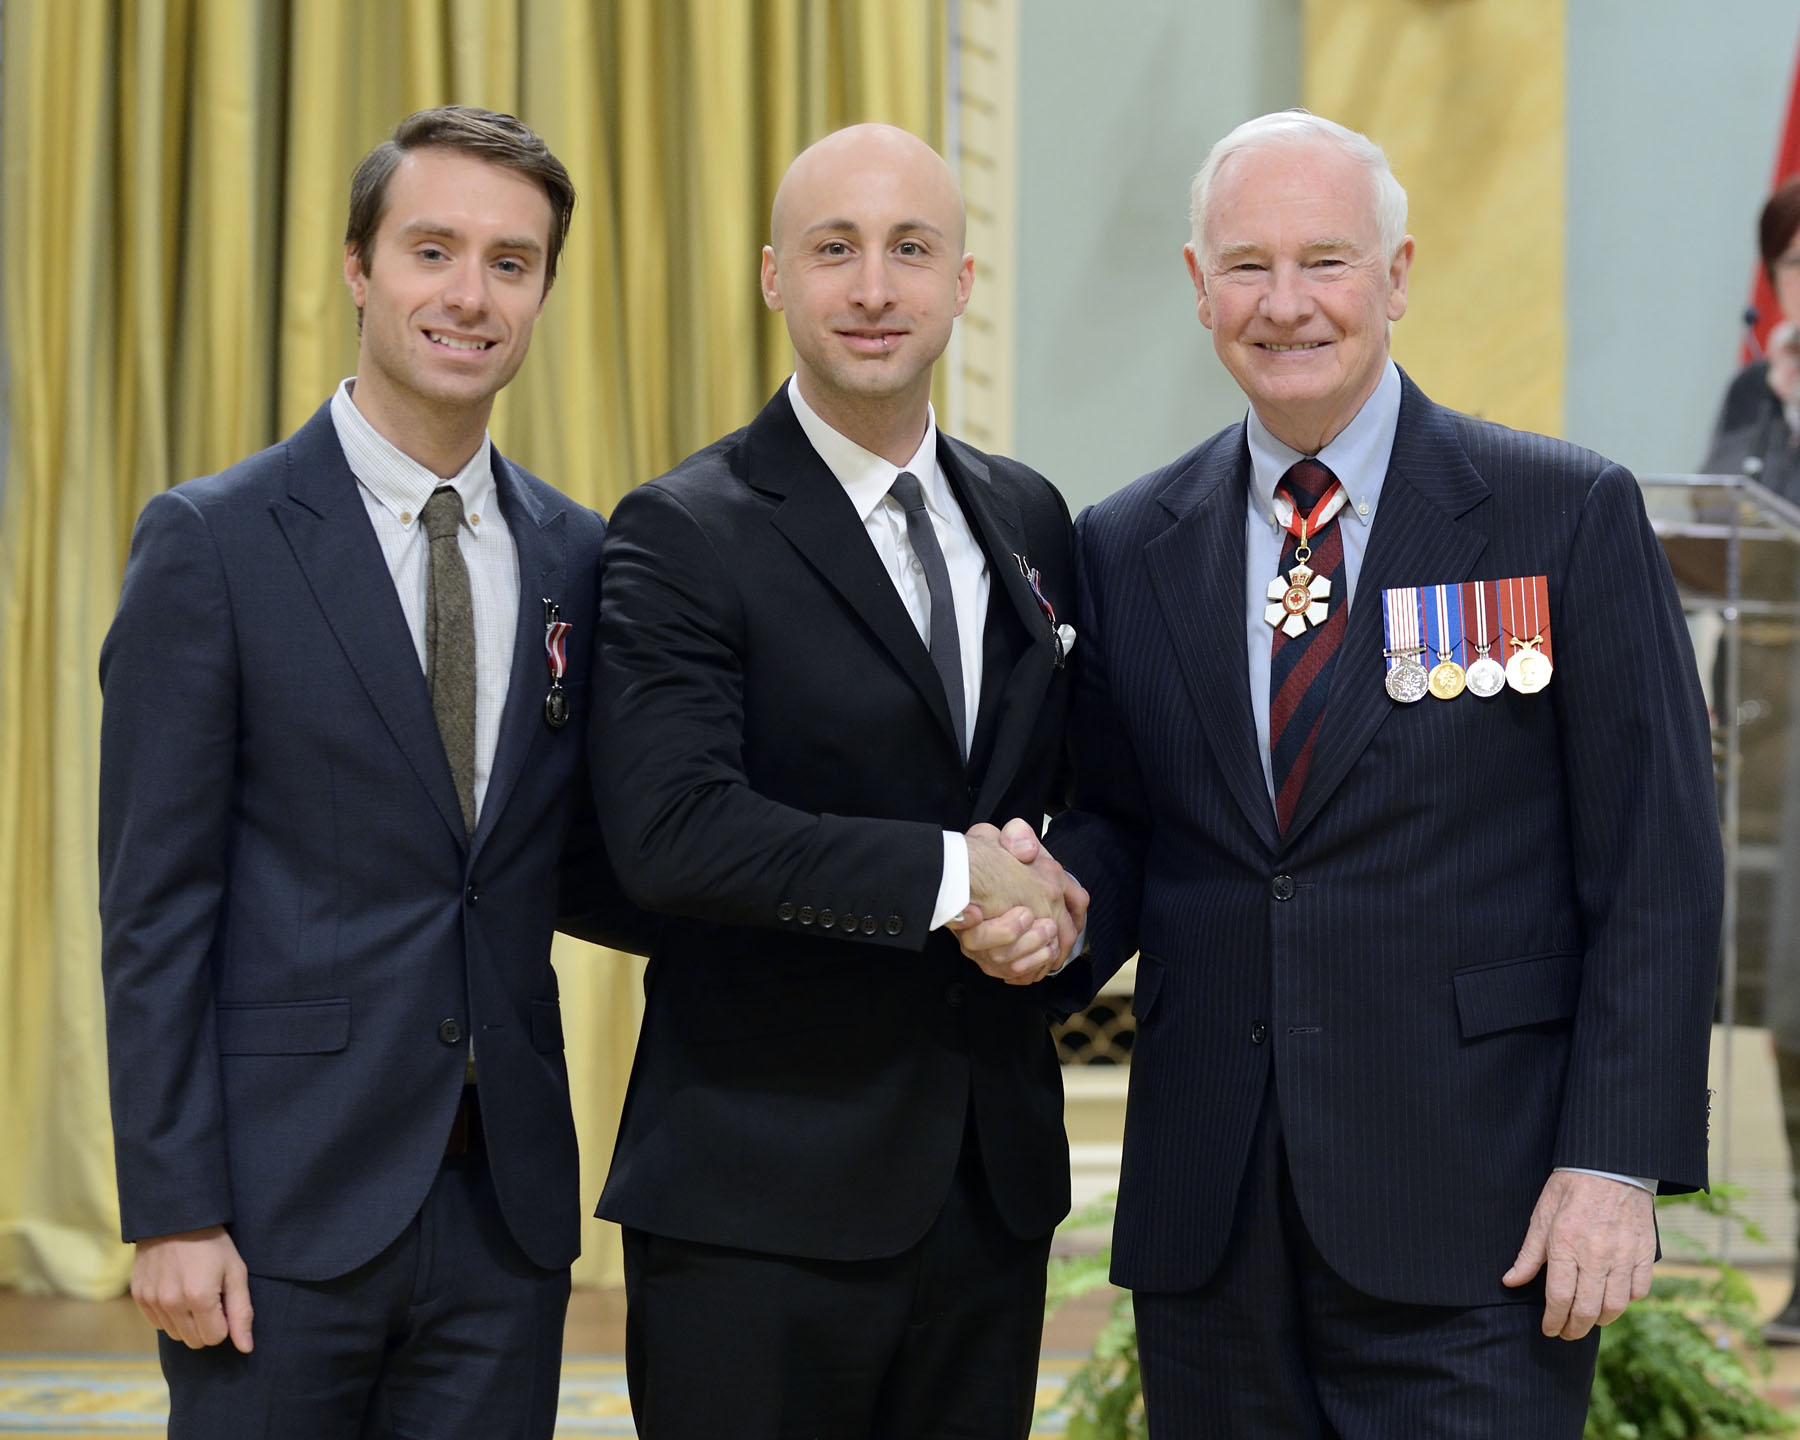 The popular rock group Simple Plan, to which Sébastien Lefebvre and Jeff Stinco (Montréal, Quebec) belong, is concerned about problems facing youth. Through its foundation, the group promotes music as a stimulating way for young people to find their passion and purpose in life, avoid street gangs and stay in school. The medals awarded to Pierre Bouvier, Charles Comeau and David Desrosiers will be presented to them at a later date.